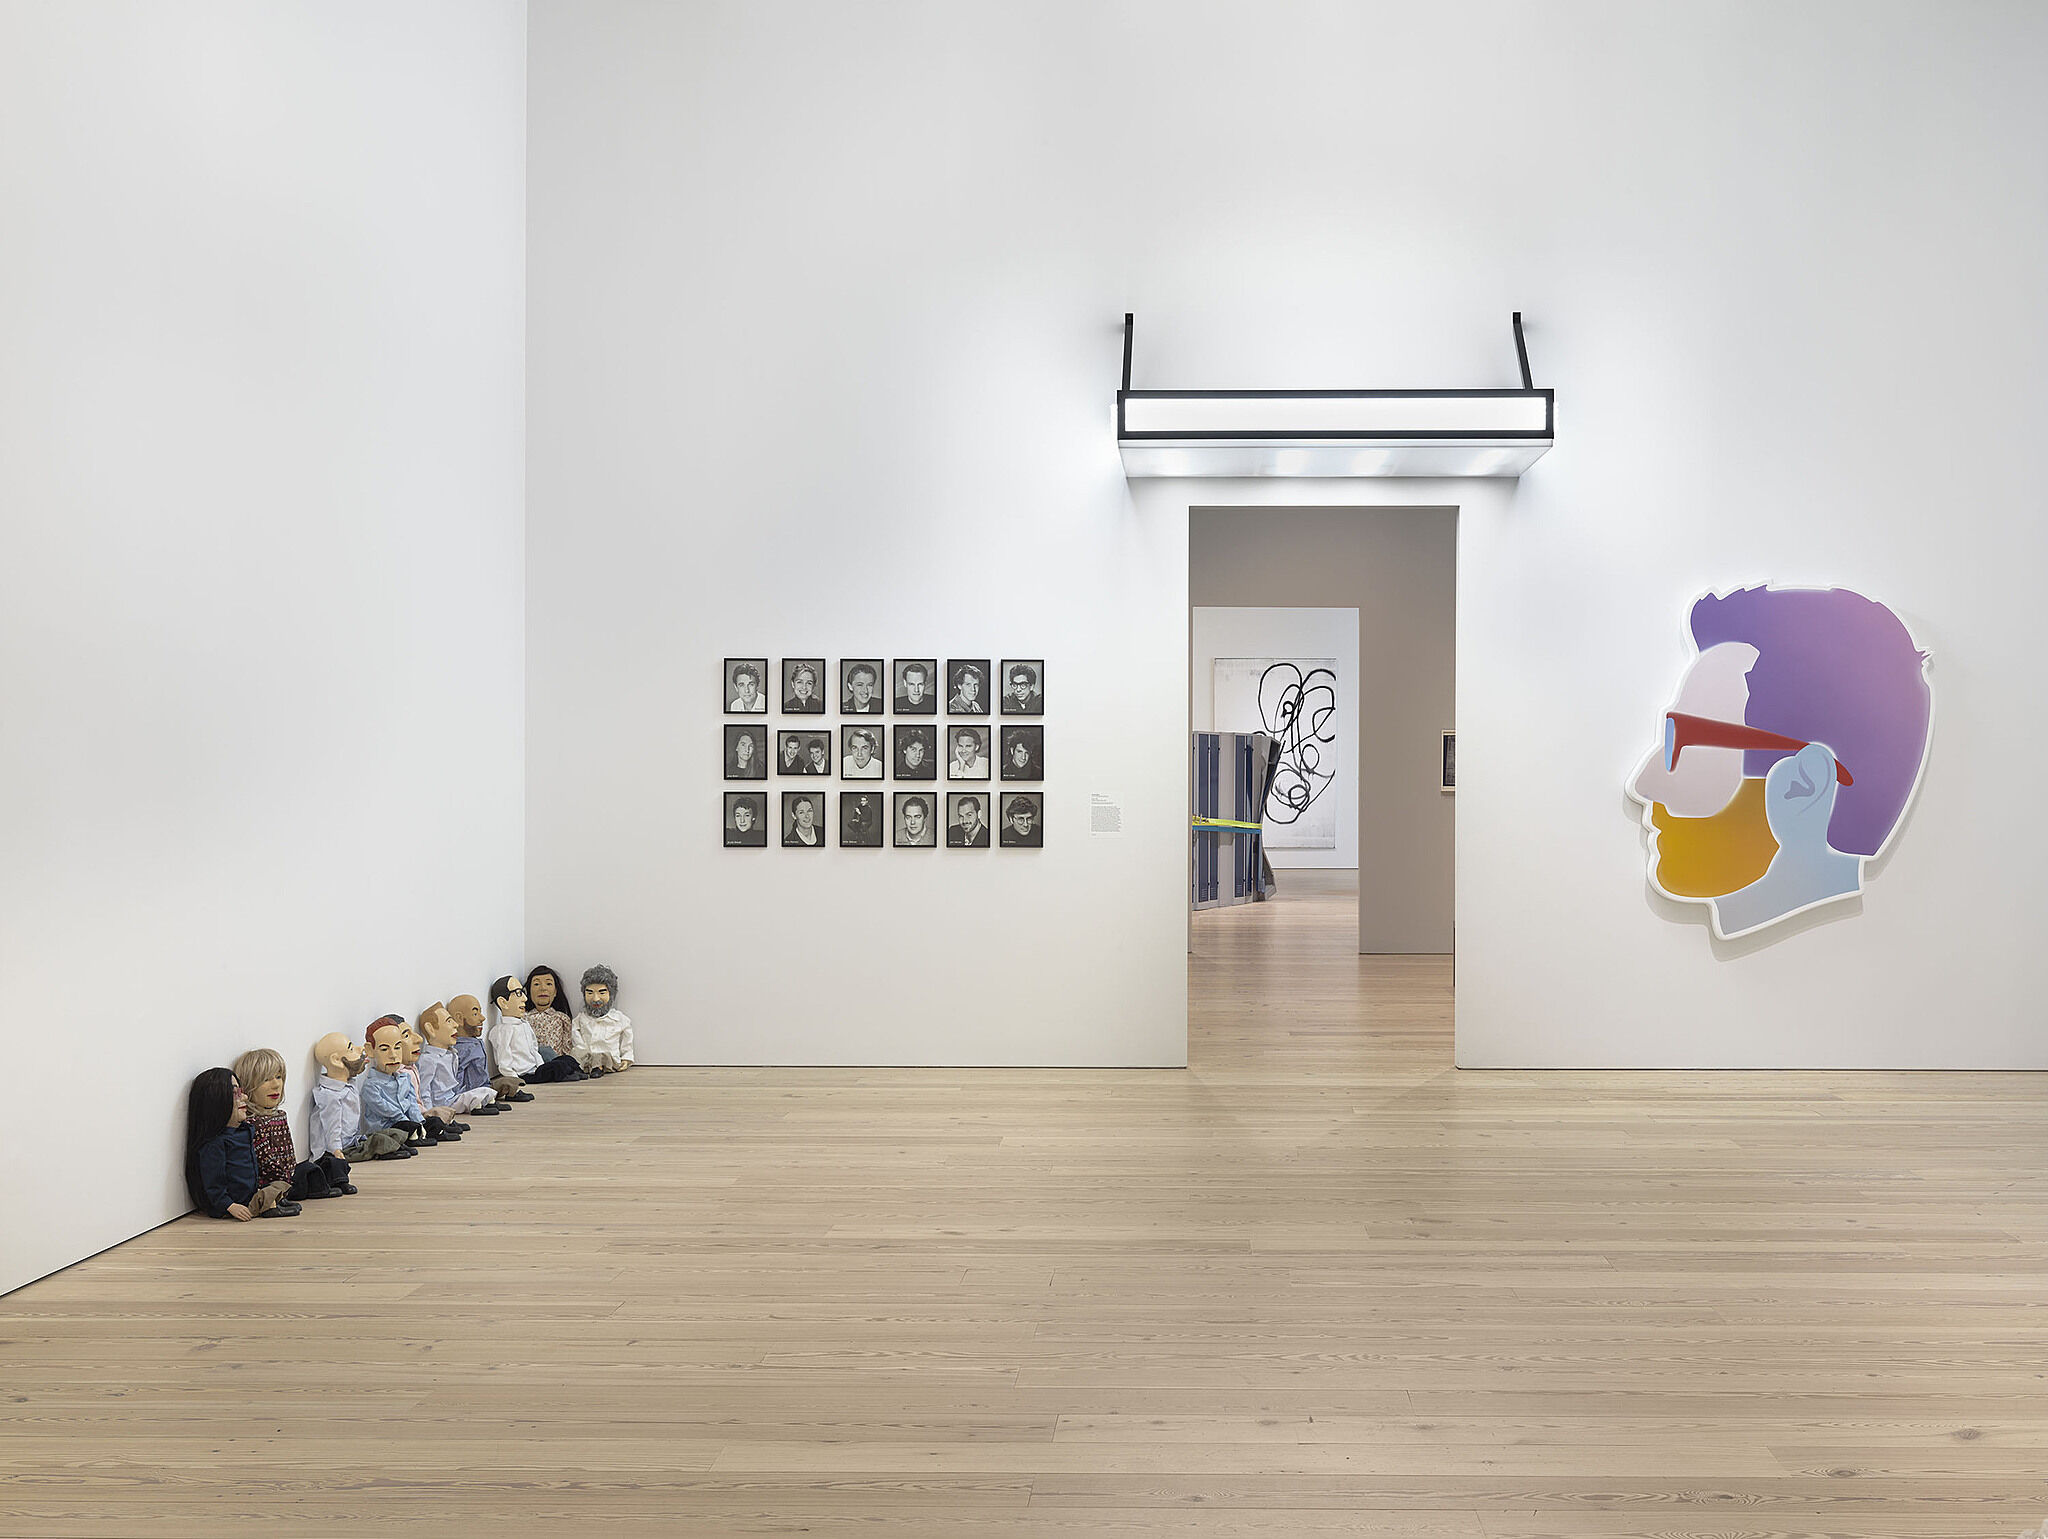 A series of dolls on the left side of the gallery and other artwork on the wall.